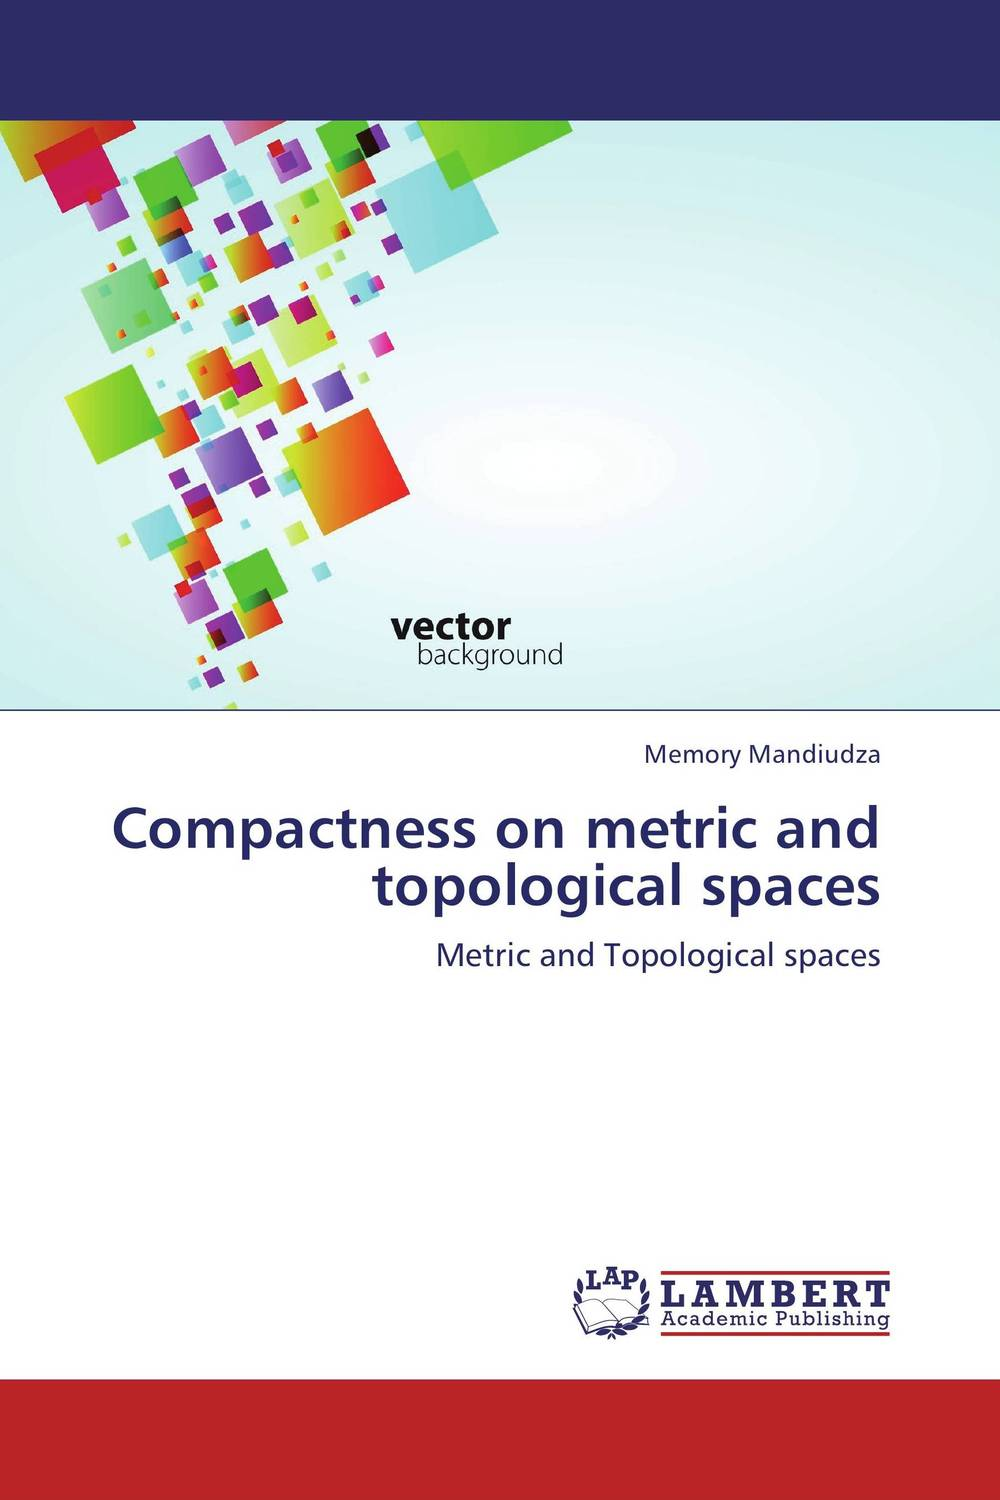 Compactness on metric and topological spaces great spaces home extensions лучшие пристройки к дому